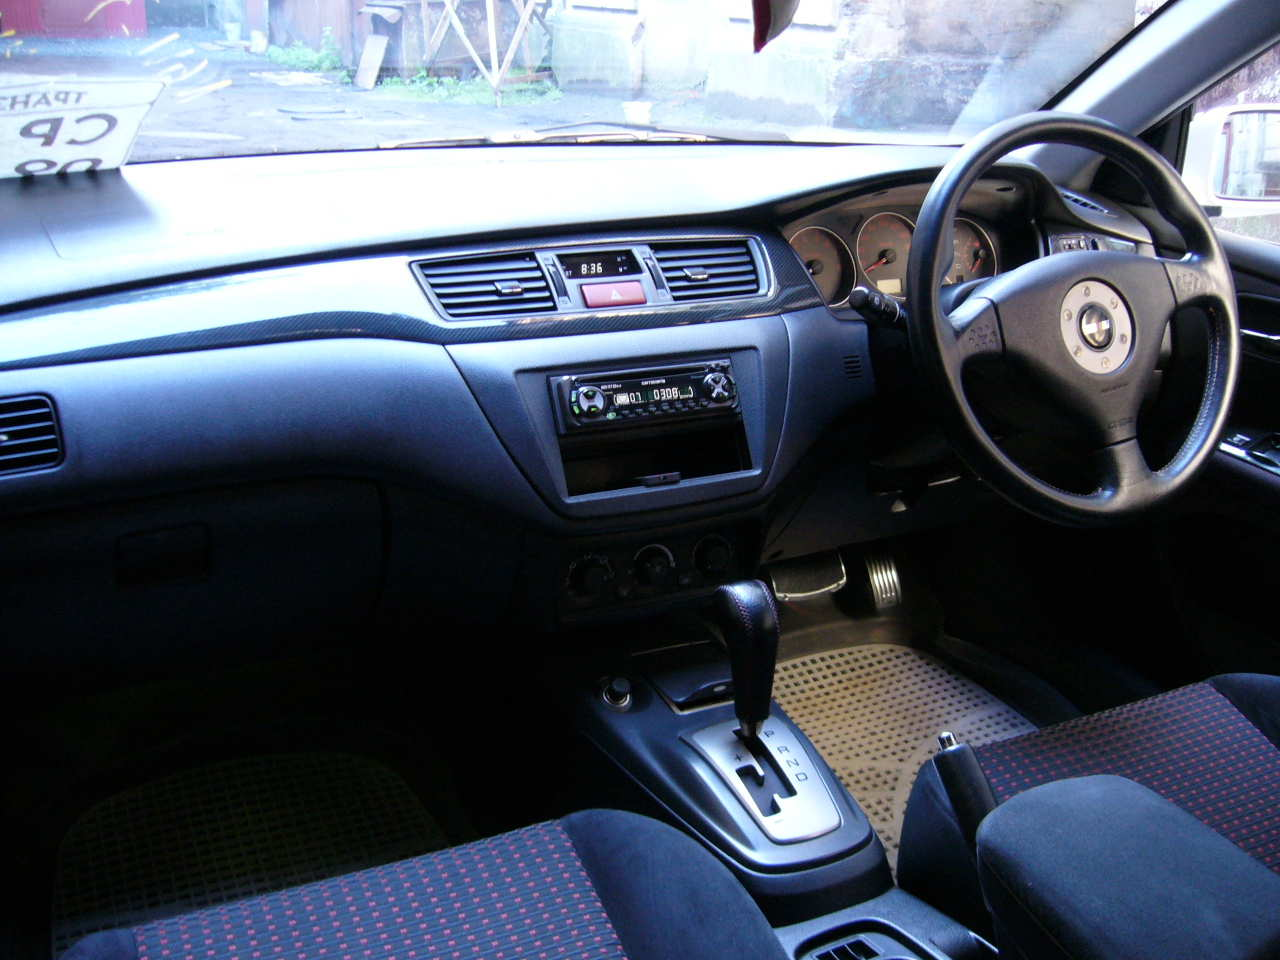 Cedia car for sale in bangalore dating 10